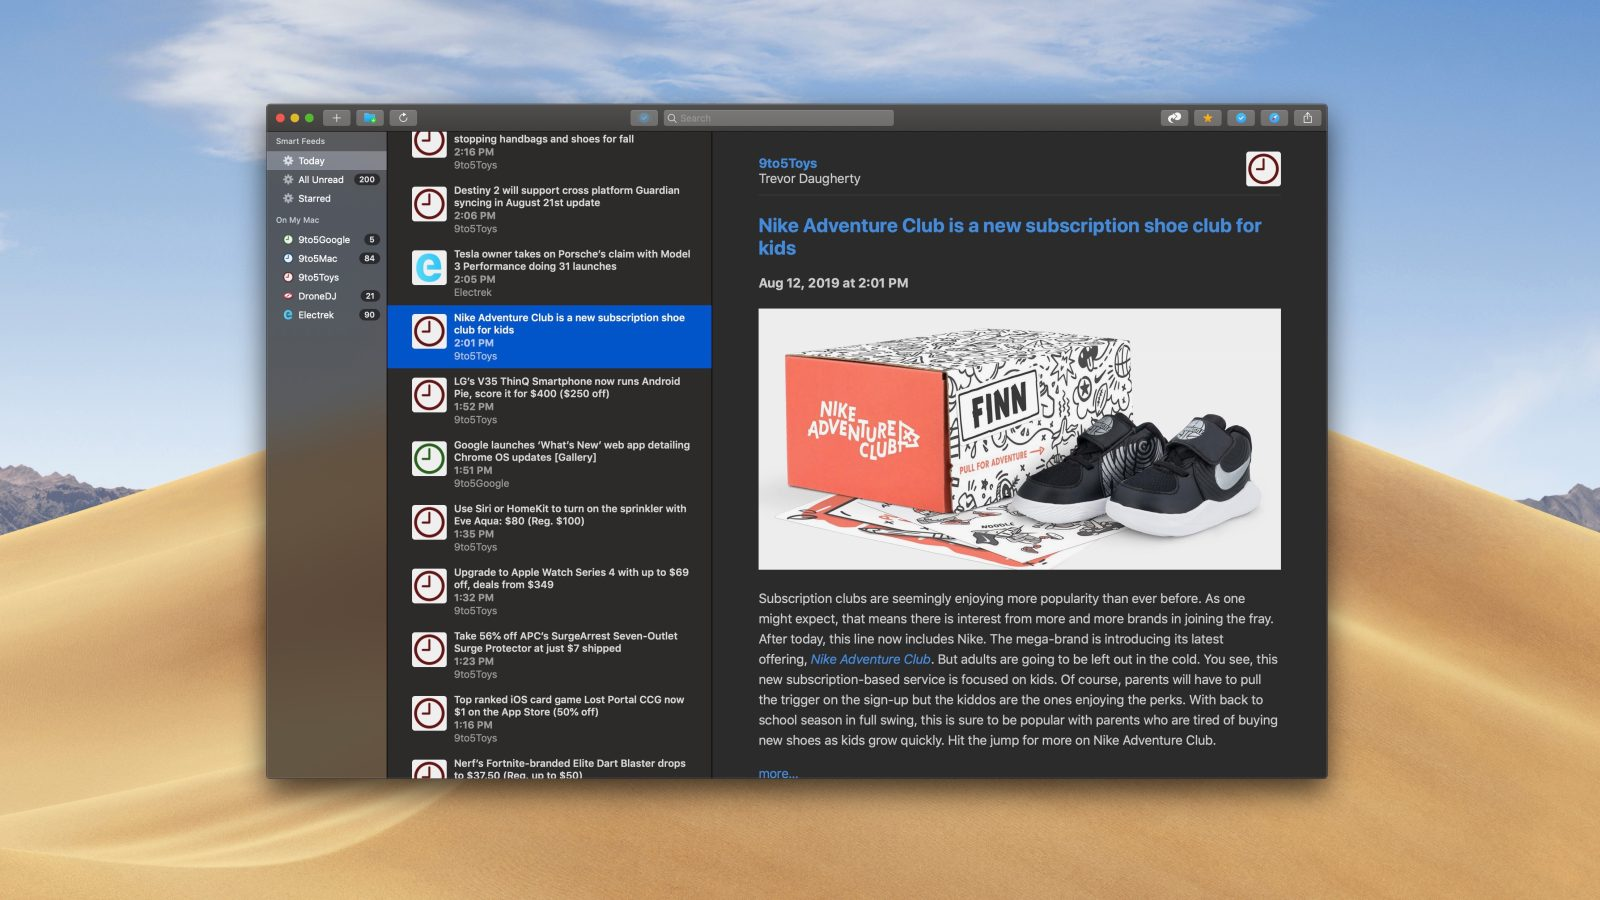 NetNewsWire 5.0 RSS reader launches in public beta with Dark Mode, Safari extension, more